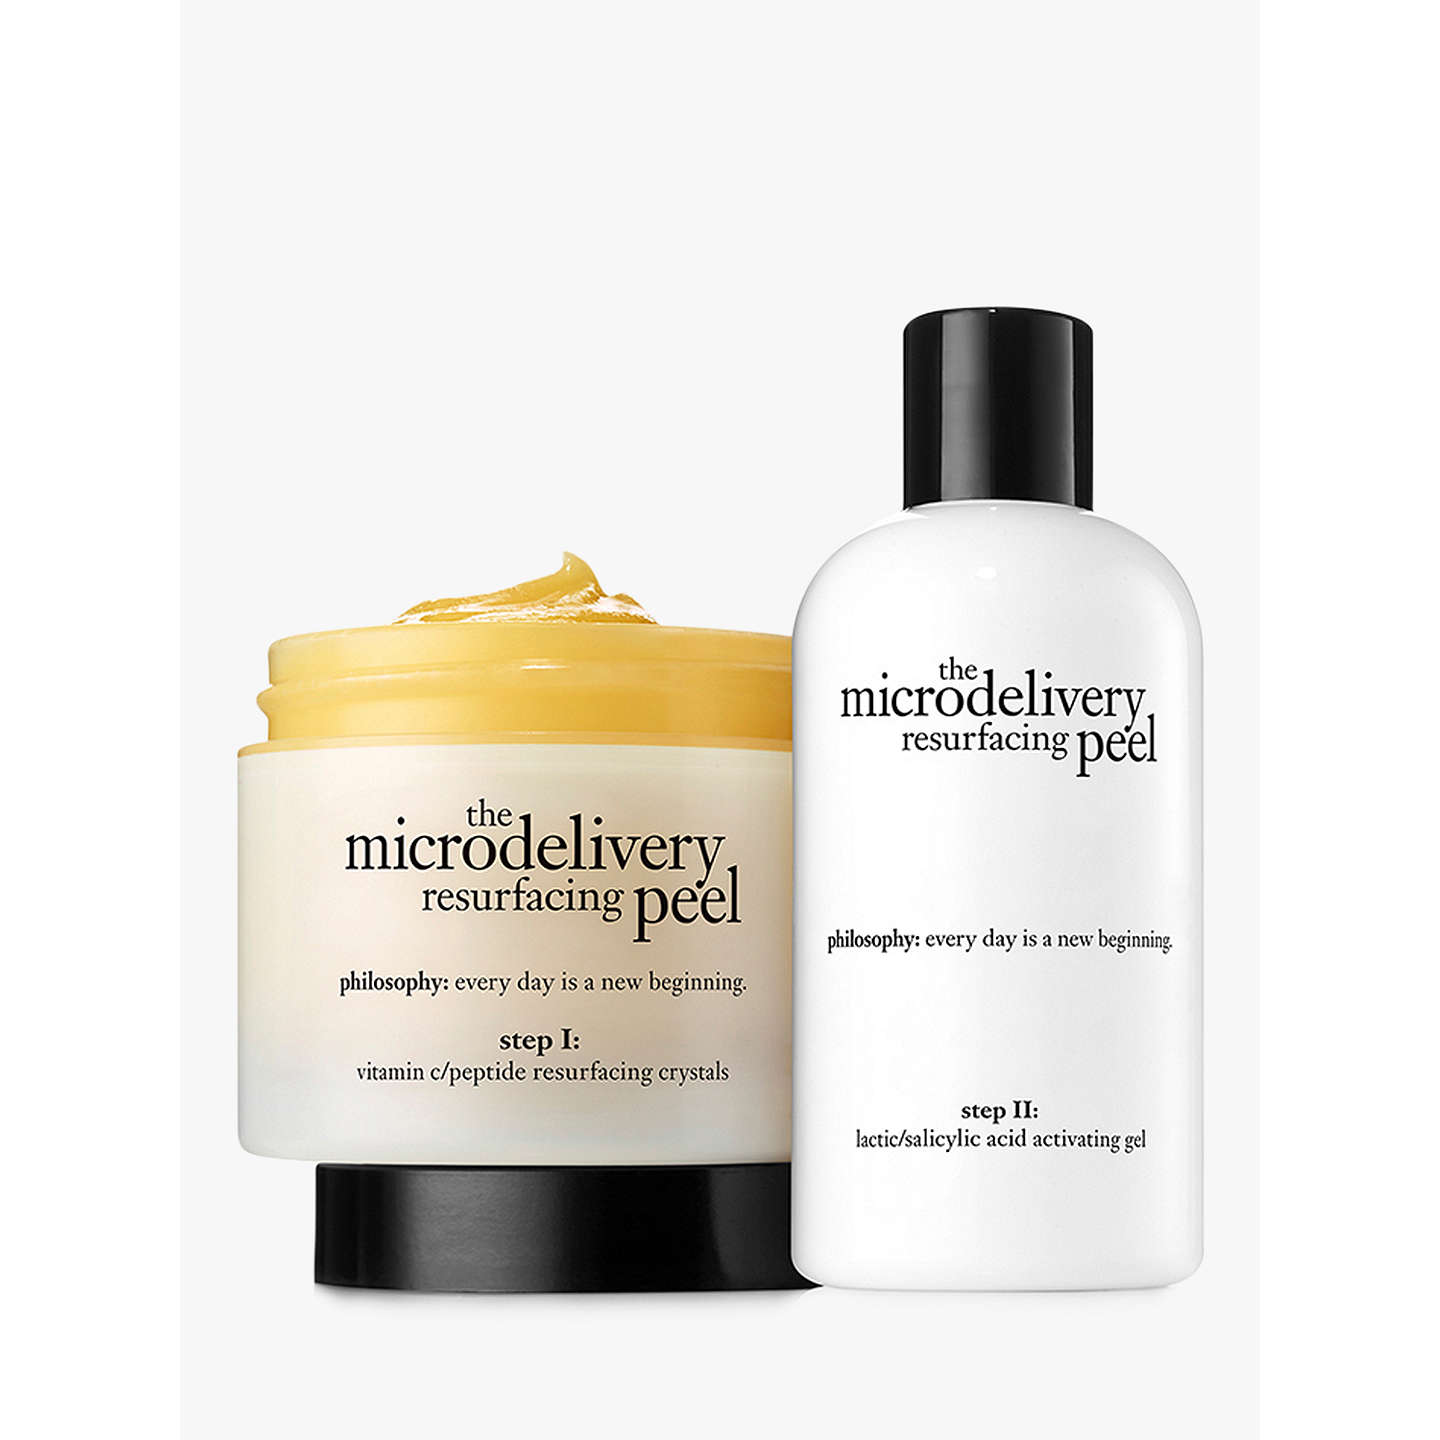 BuyPhilosophy Microdelivery Peel Kit Online at johnlewis.com